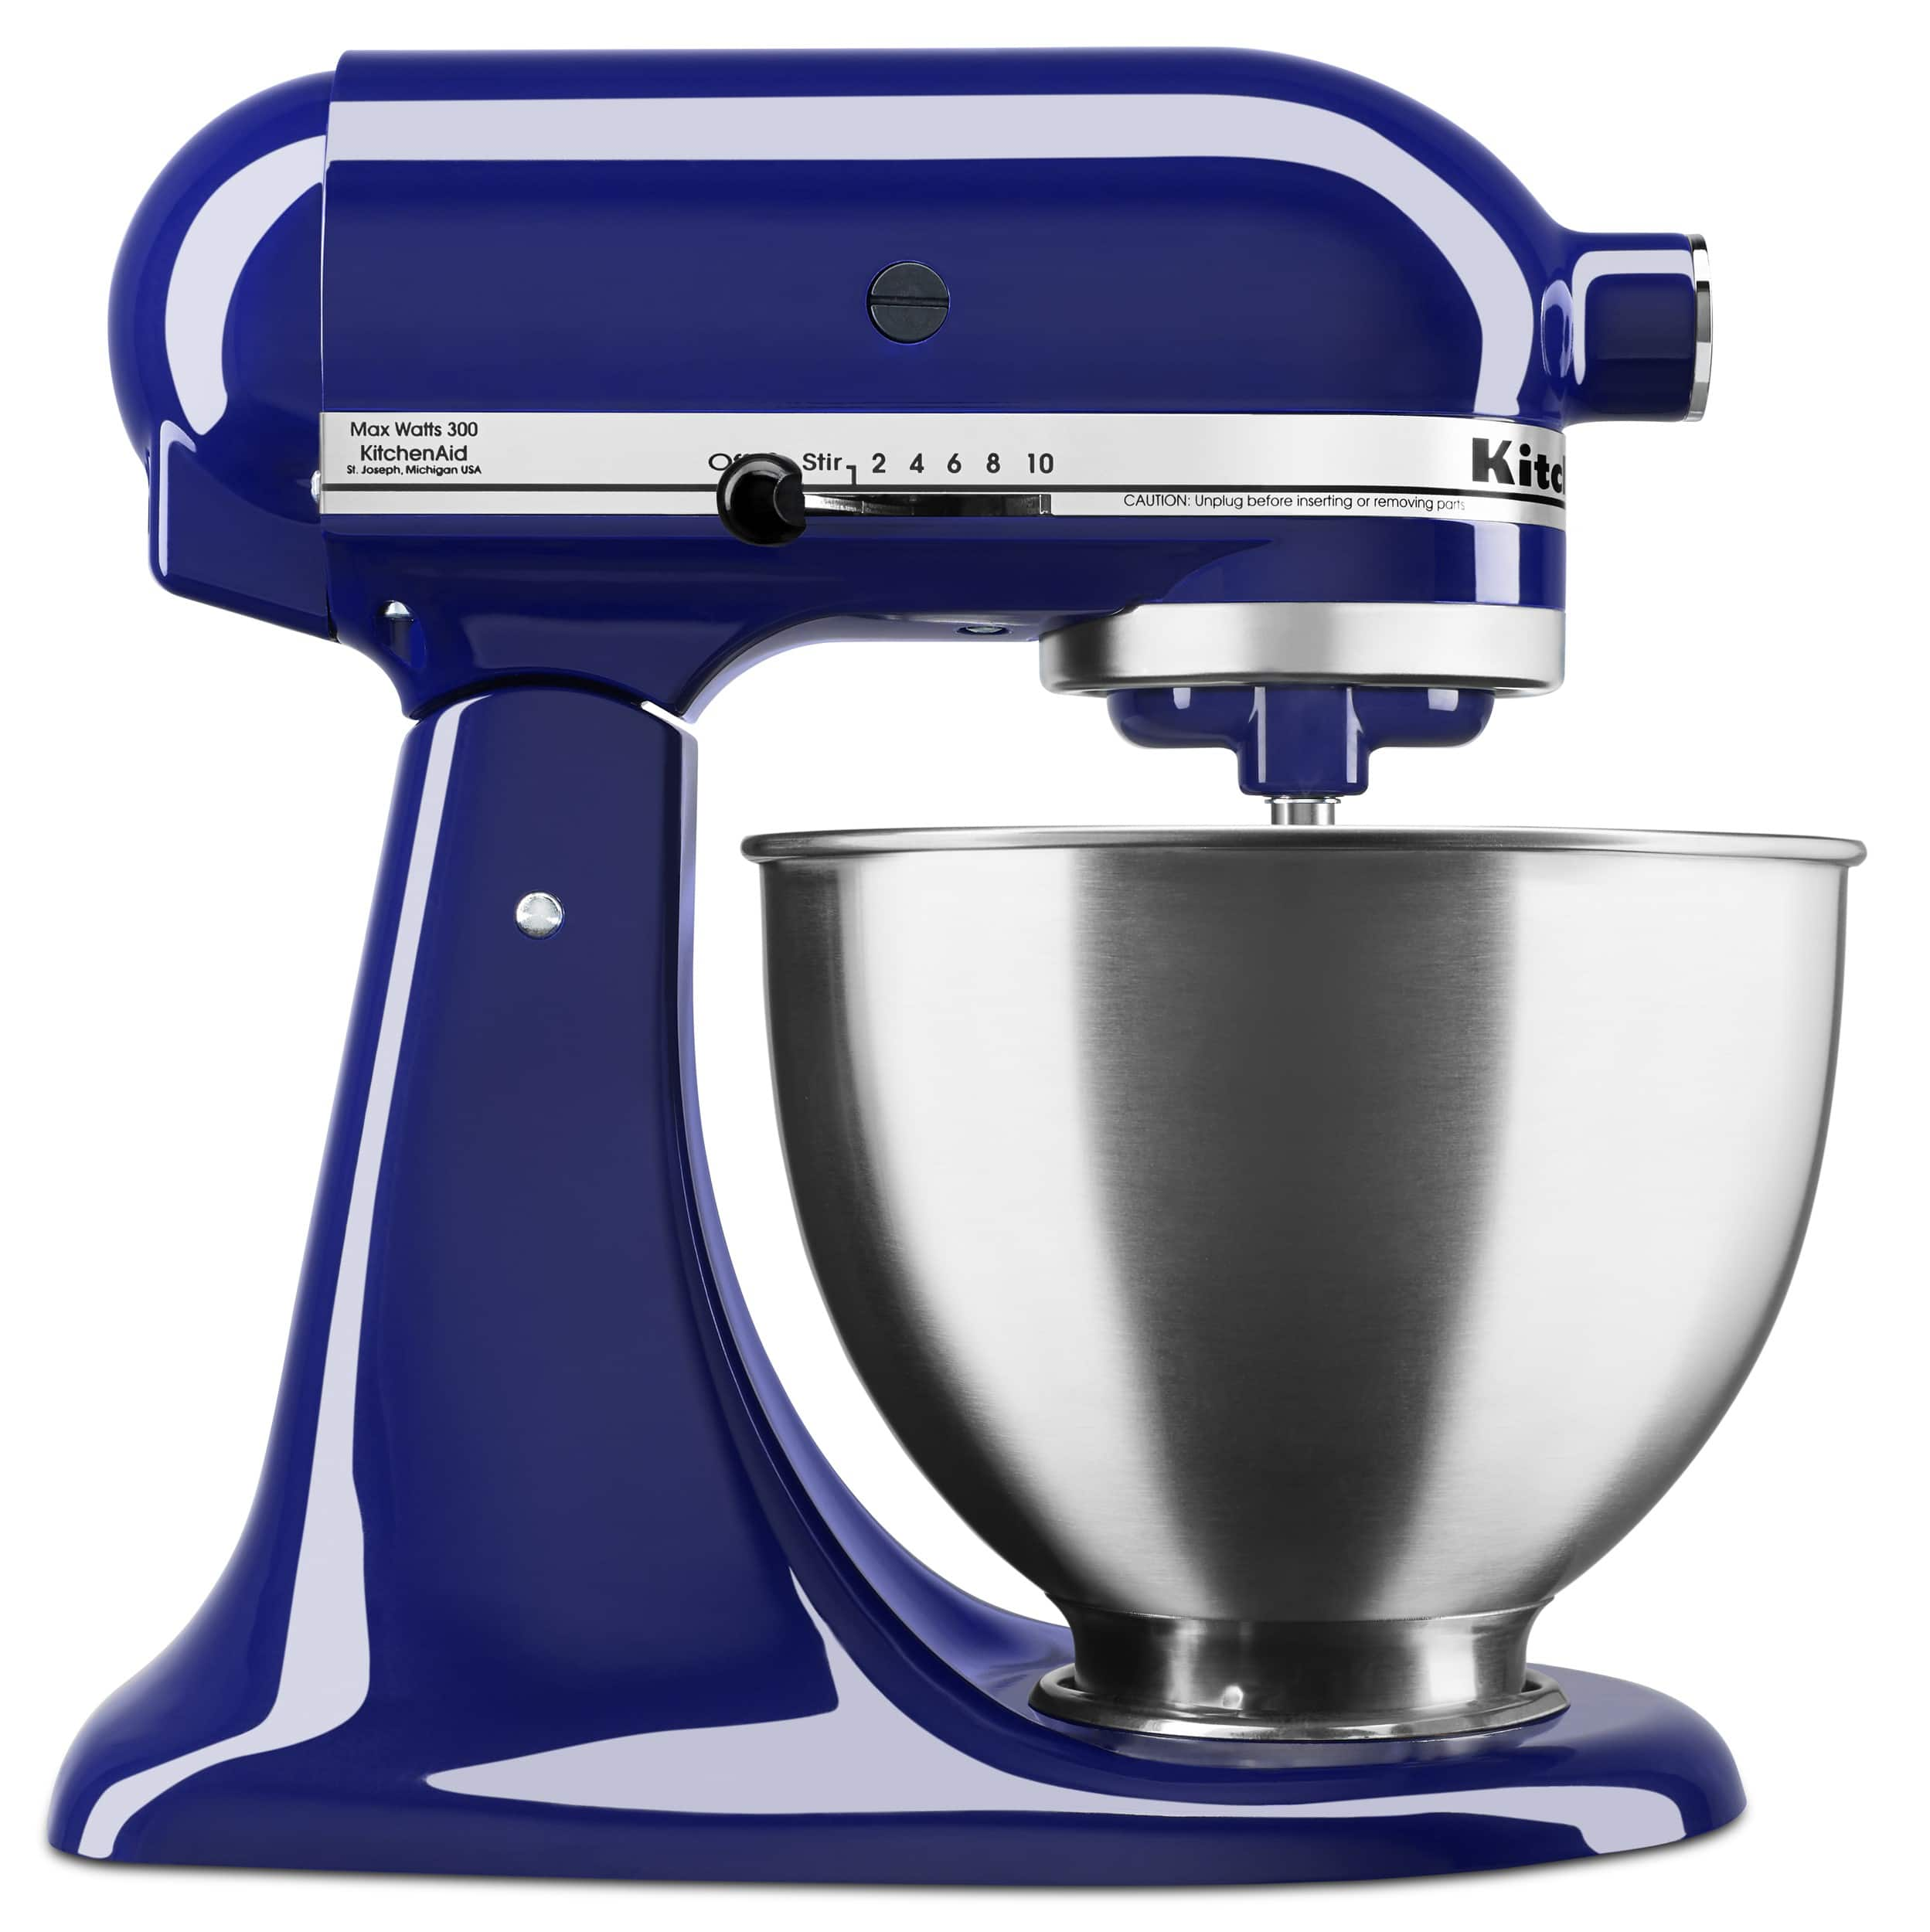 [YMMV, Walmart] KitchenAid Deluxe 4.5 Quart Tilt-Head Cobalt Blue Stand Mixer - 124$